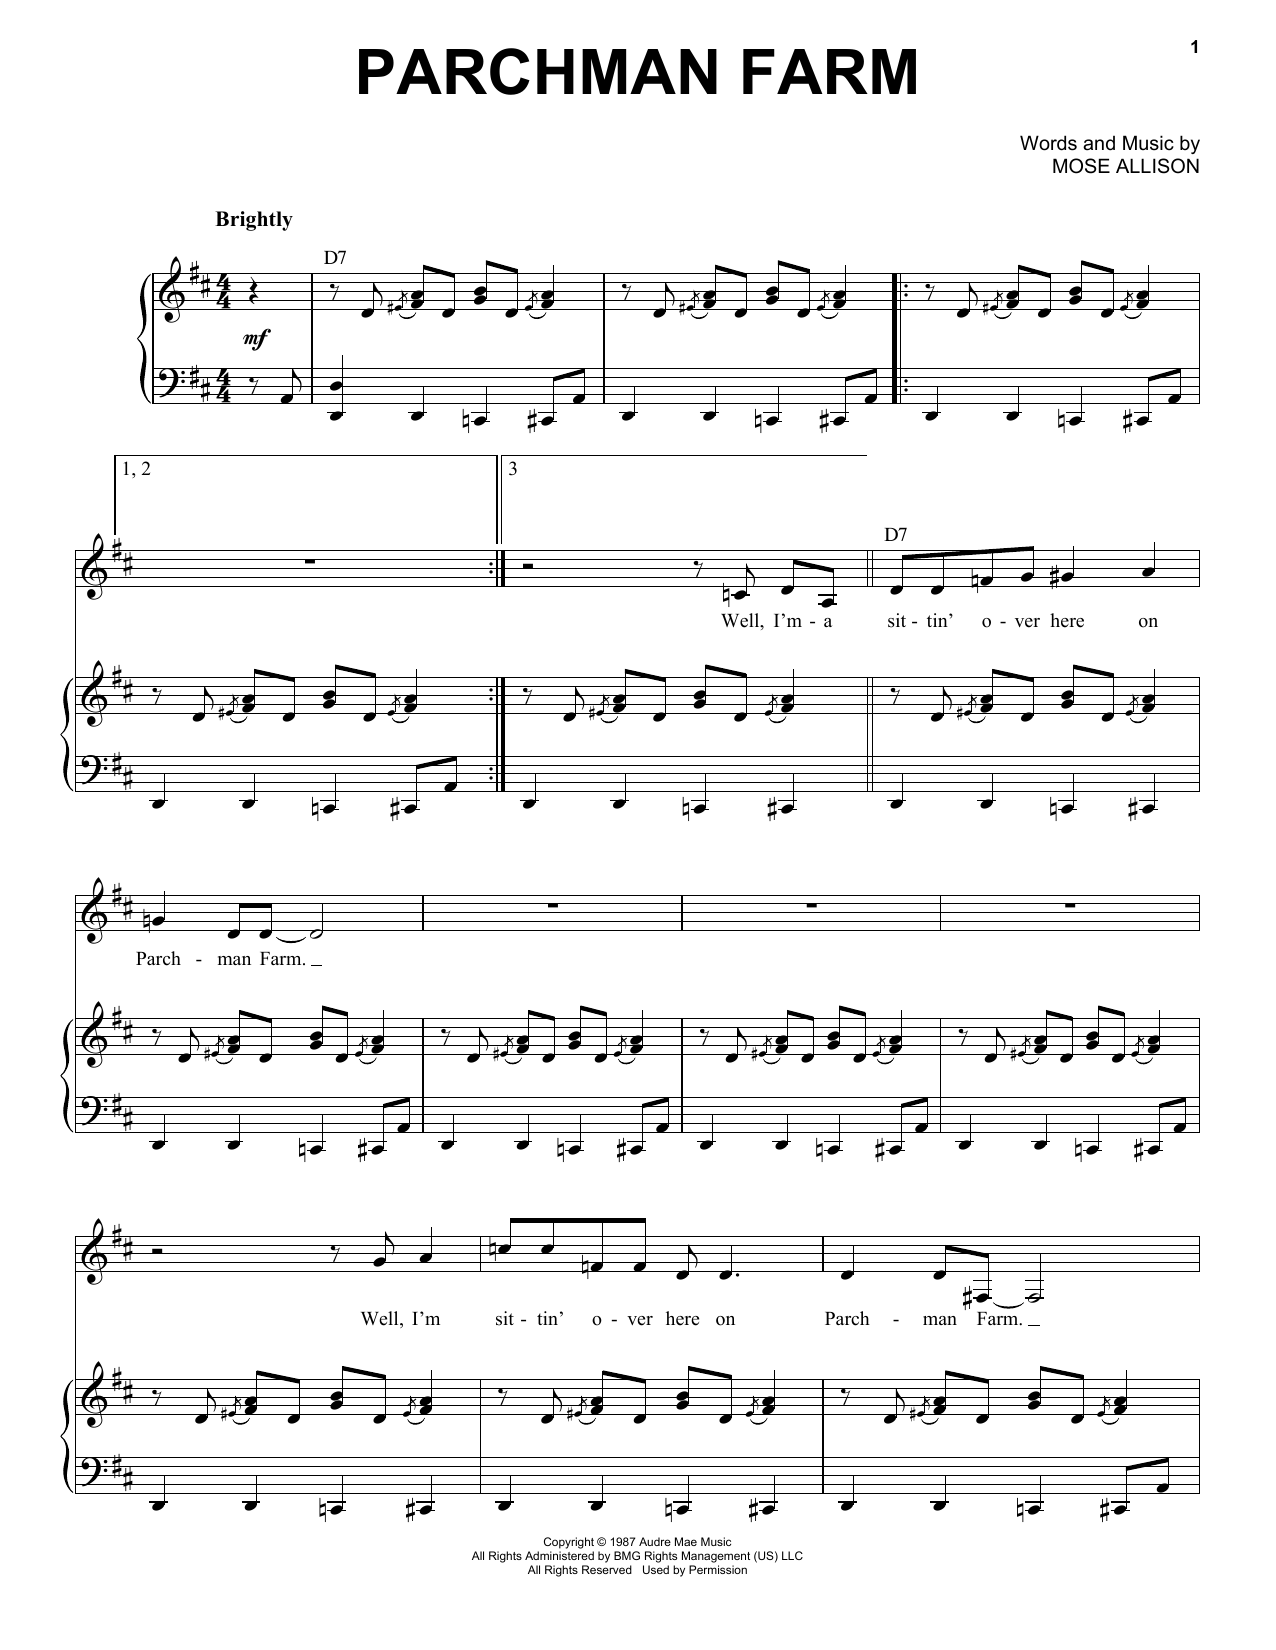 Parchman Farm Sheet Music